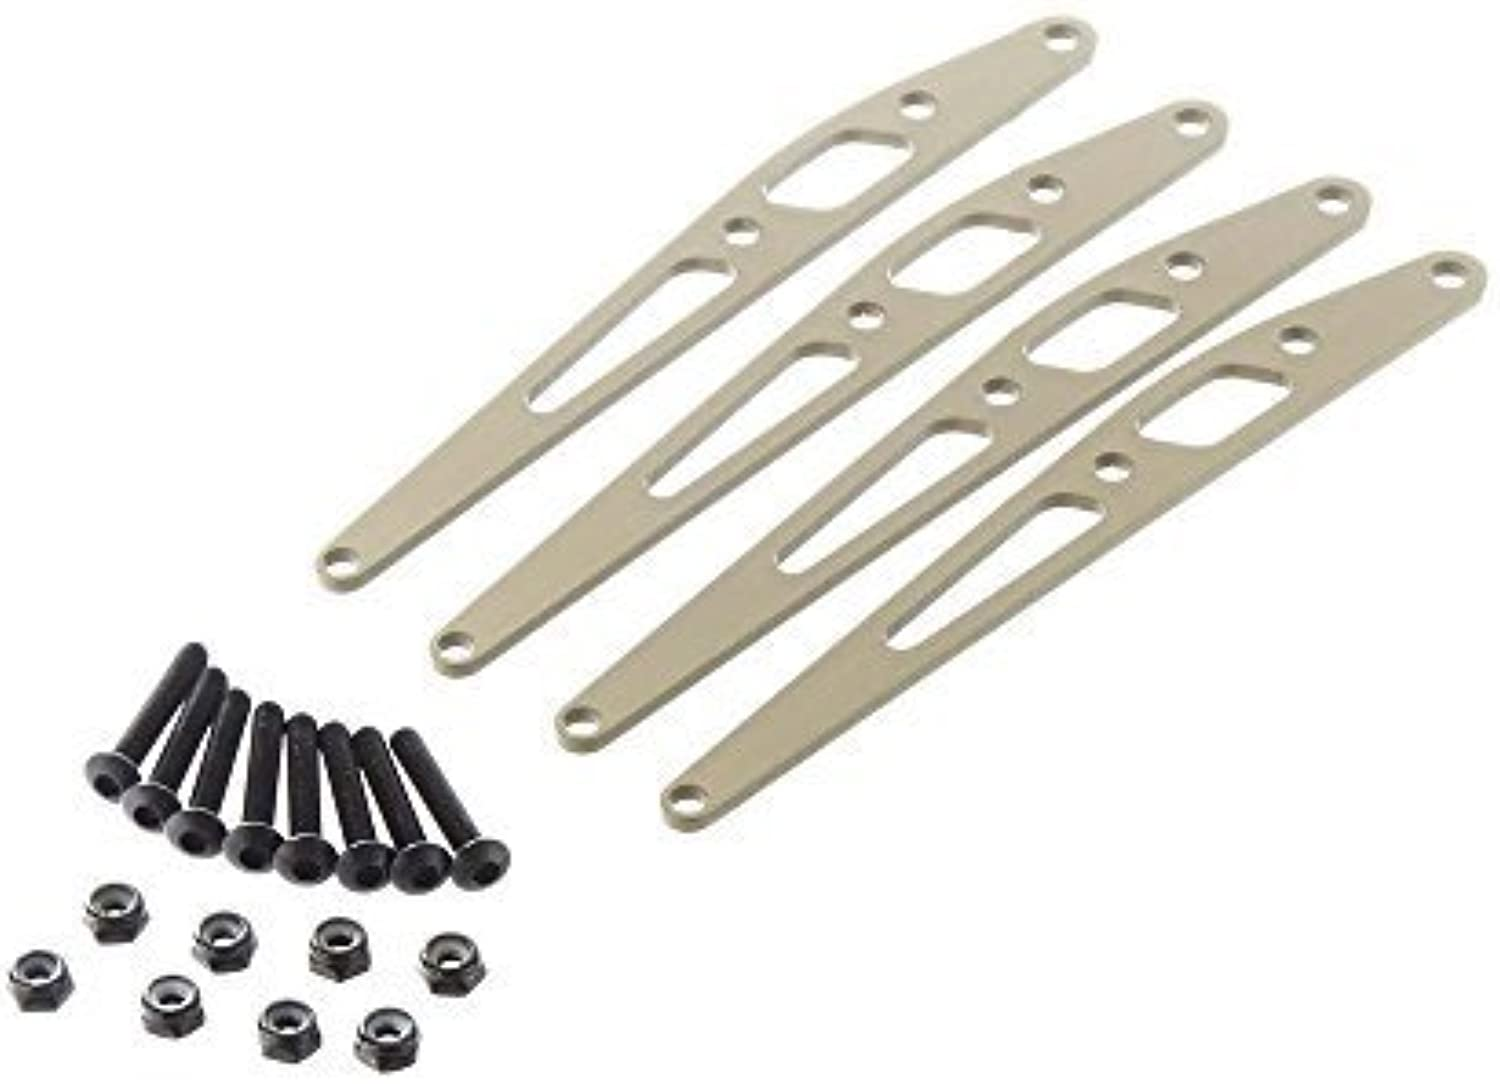 AXIAL AX31245 Lower Link Plate Set Aluminum (4) by AXIAL